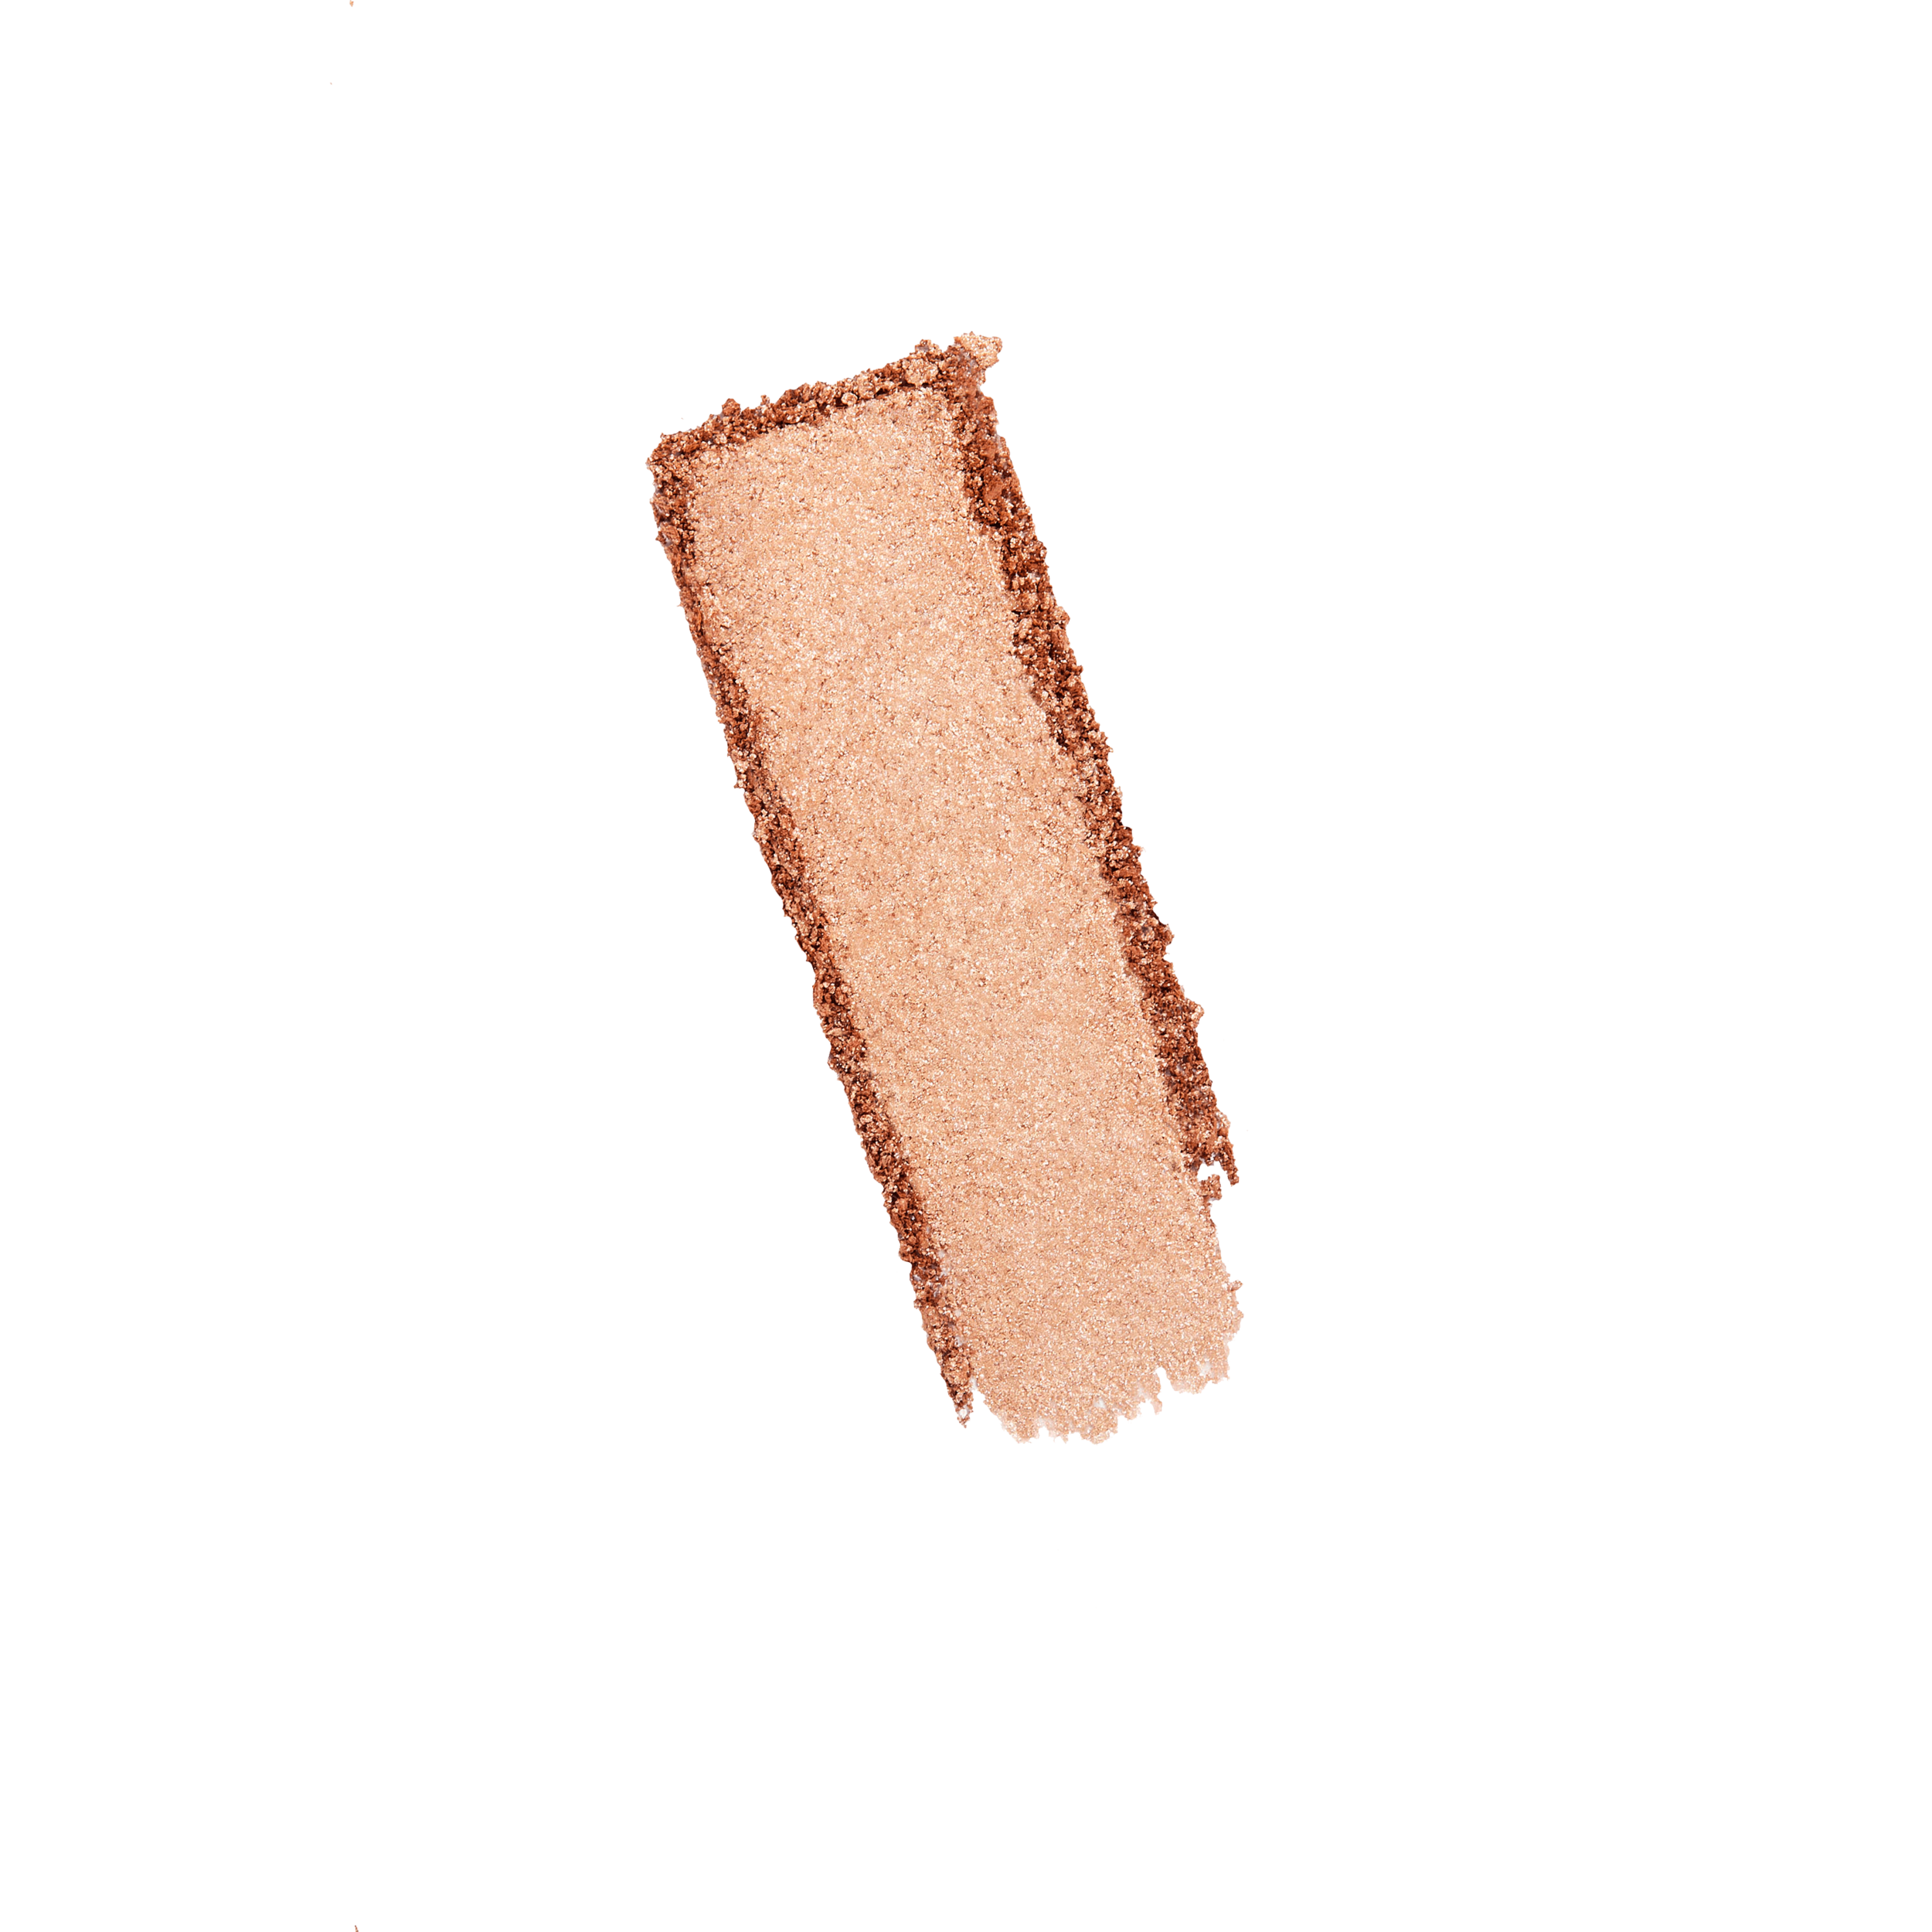 20_Radiant_Finish_Highlighter_Pink_Pearls_0239.png